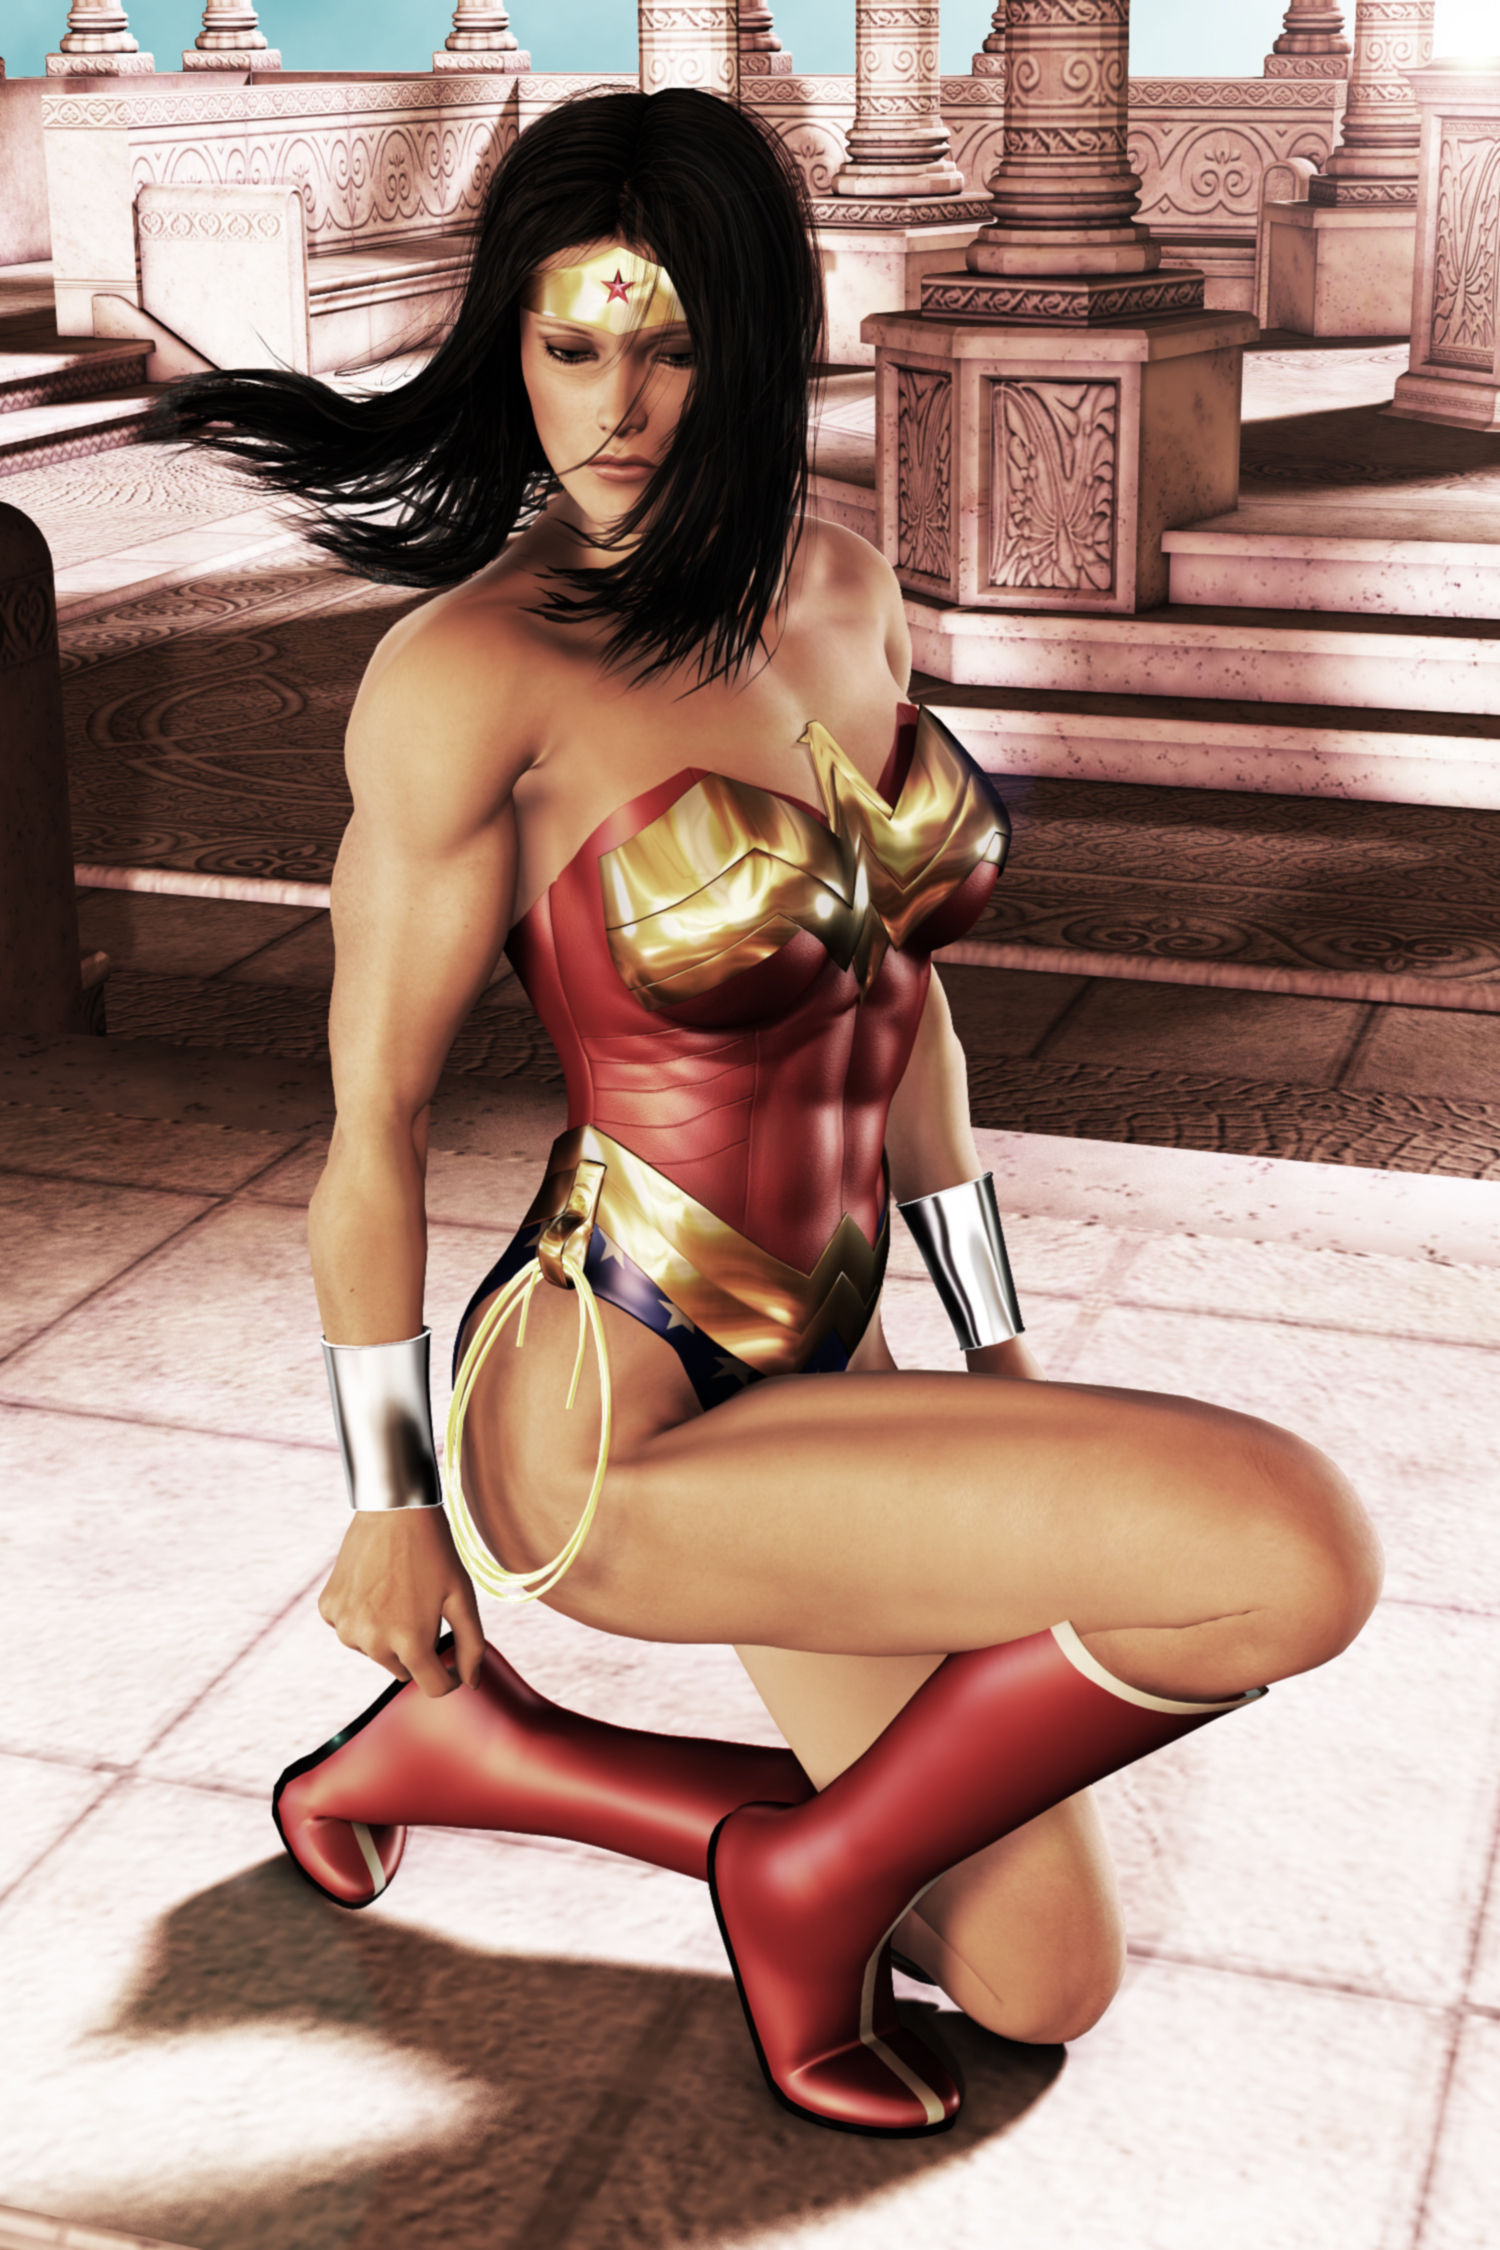 Wonder Woman - Remorse by FredAckerman